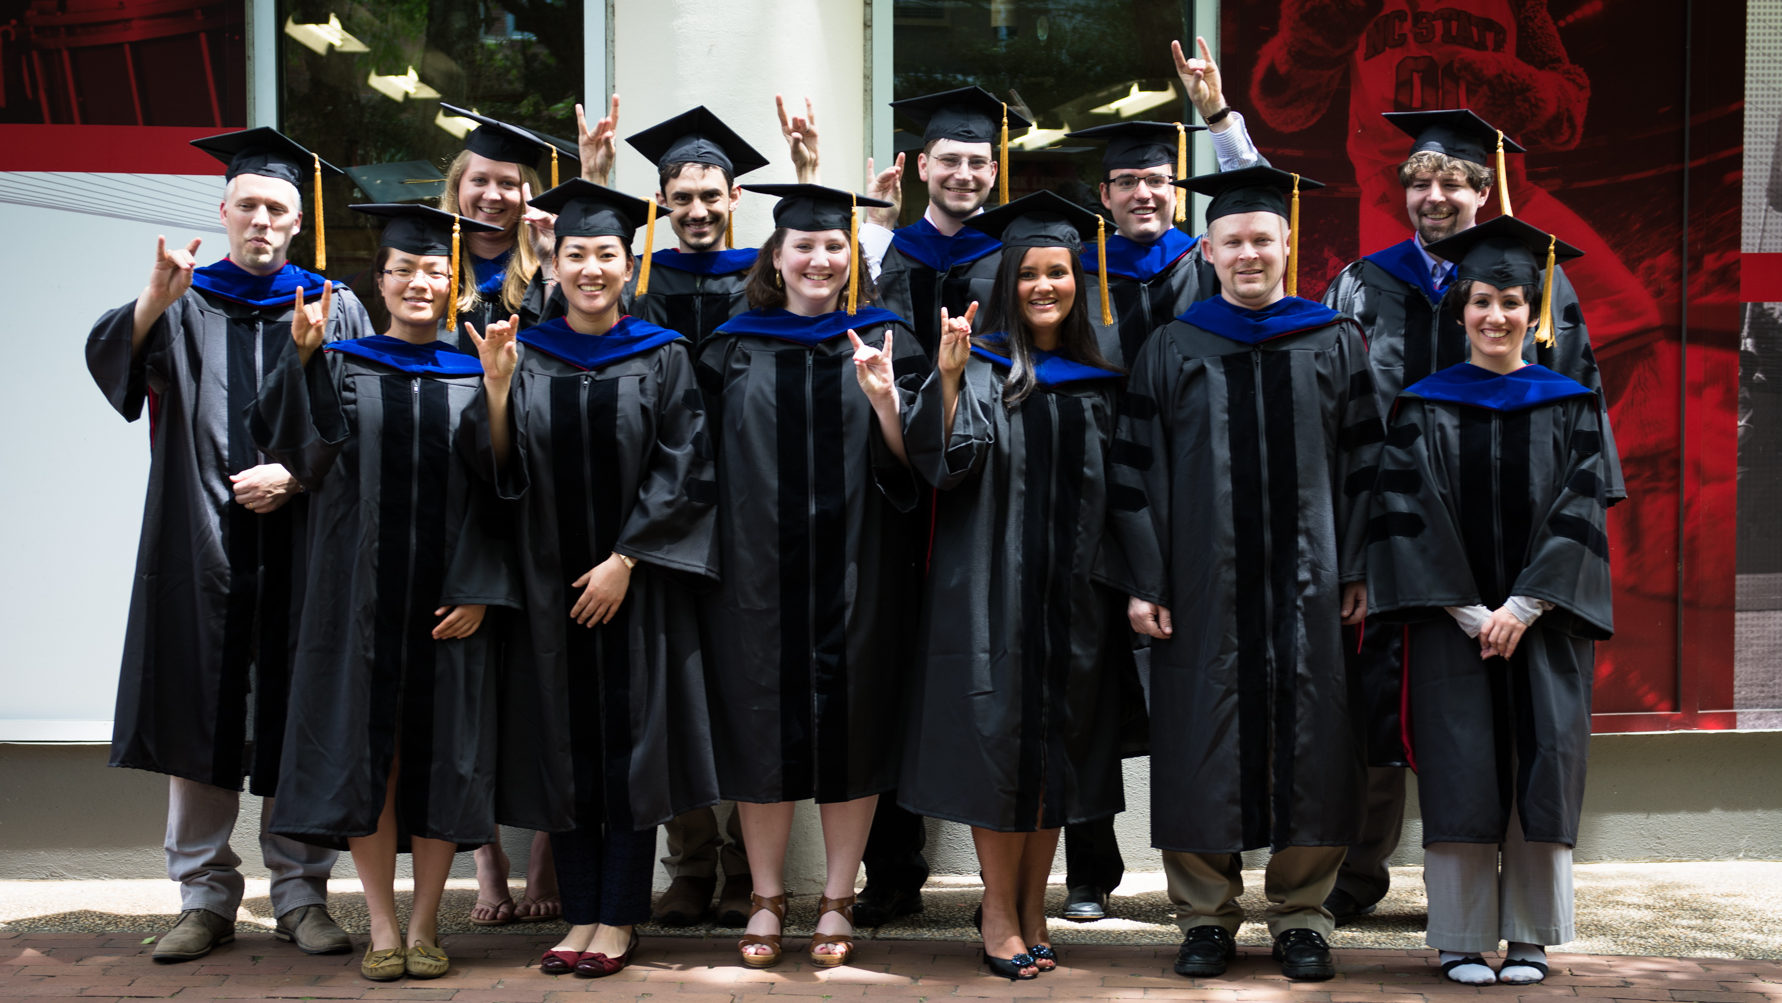 Students in black caps and gowns at graduation